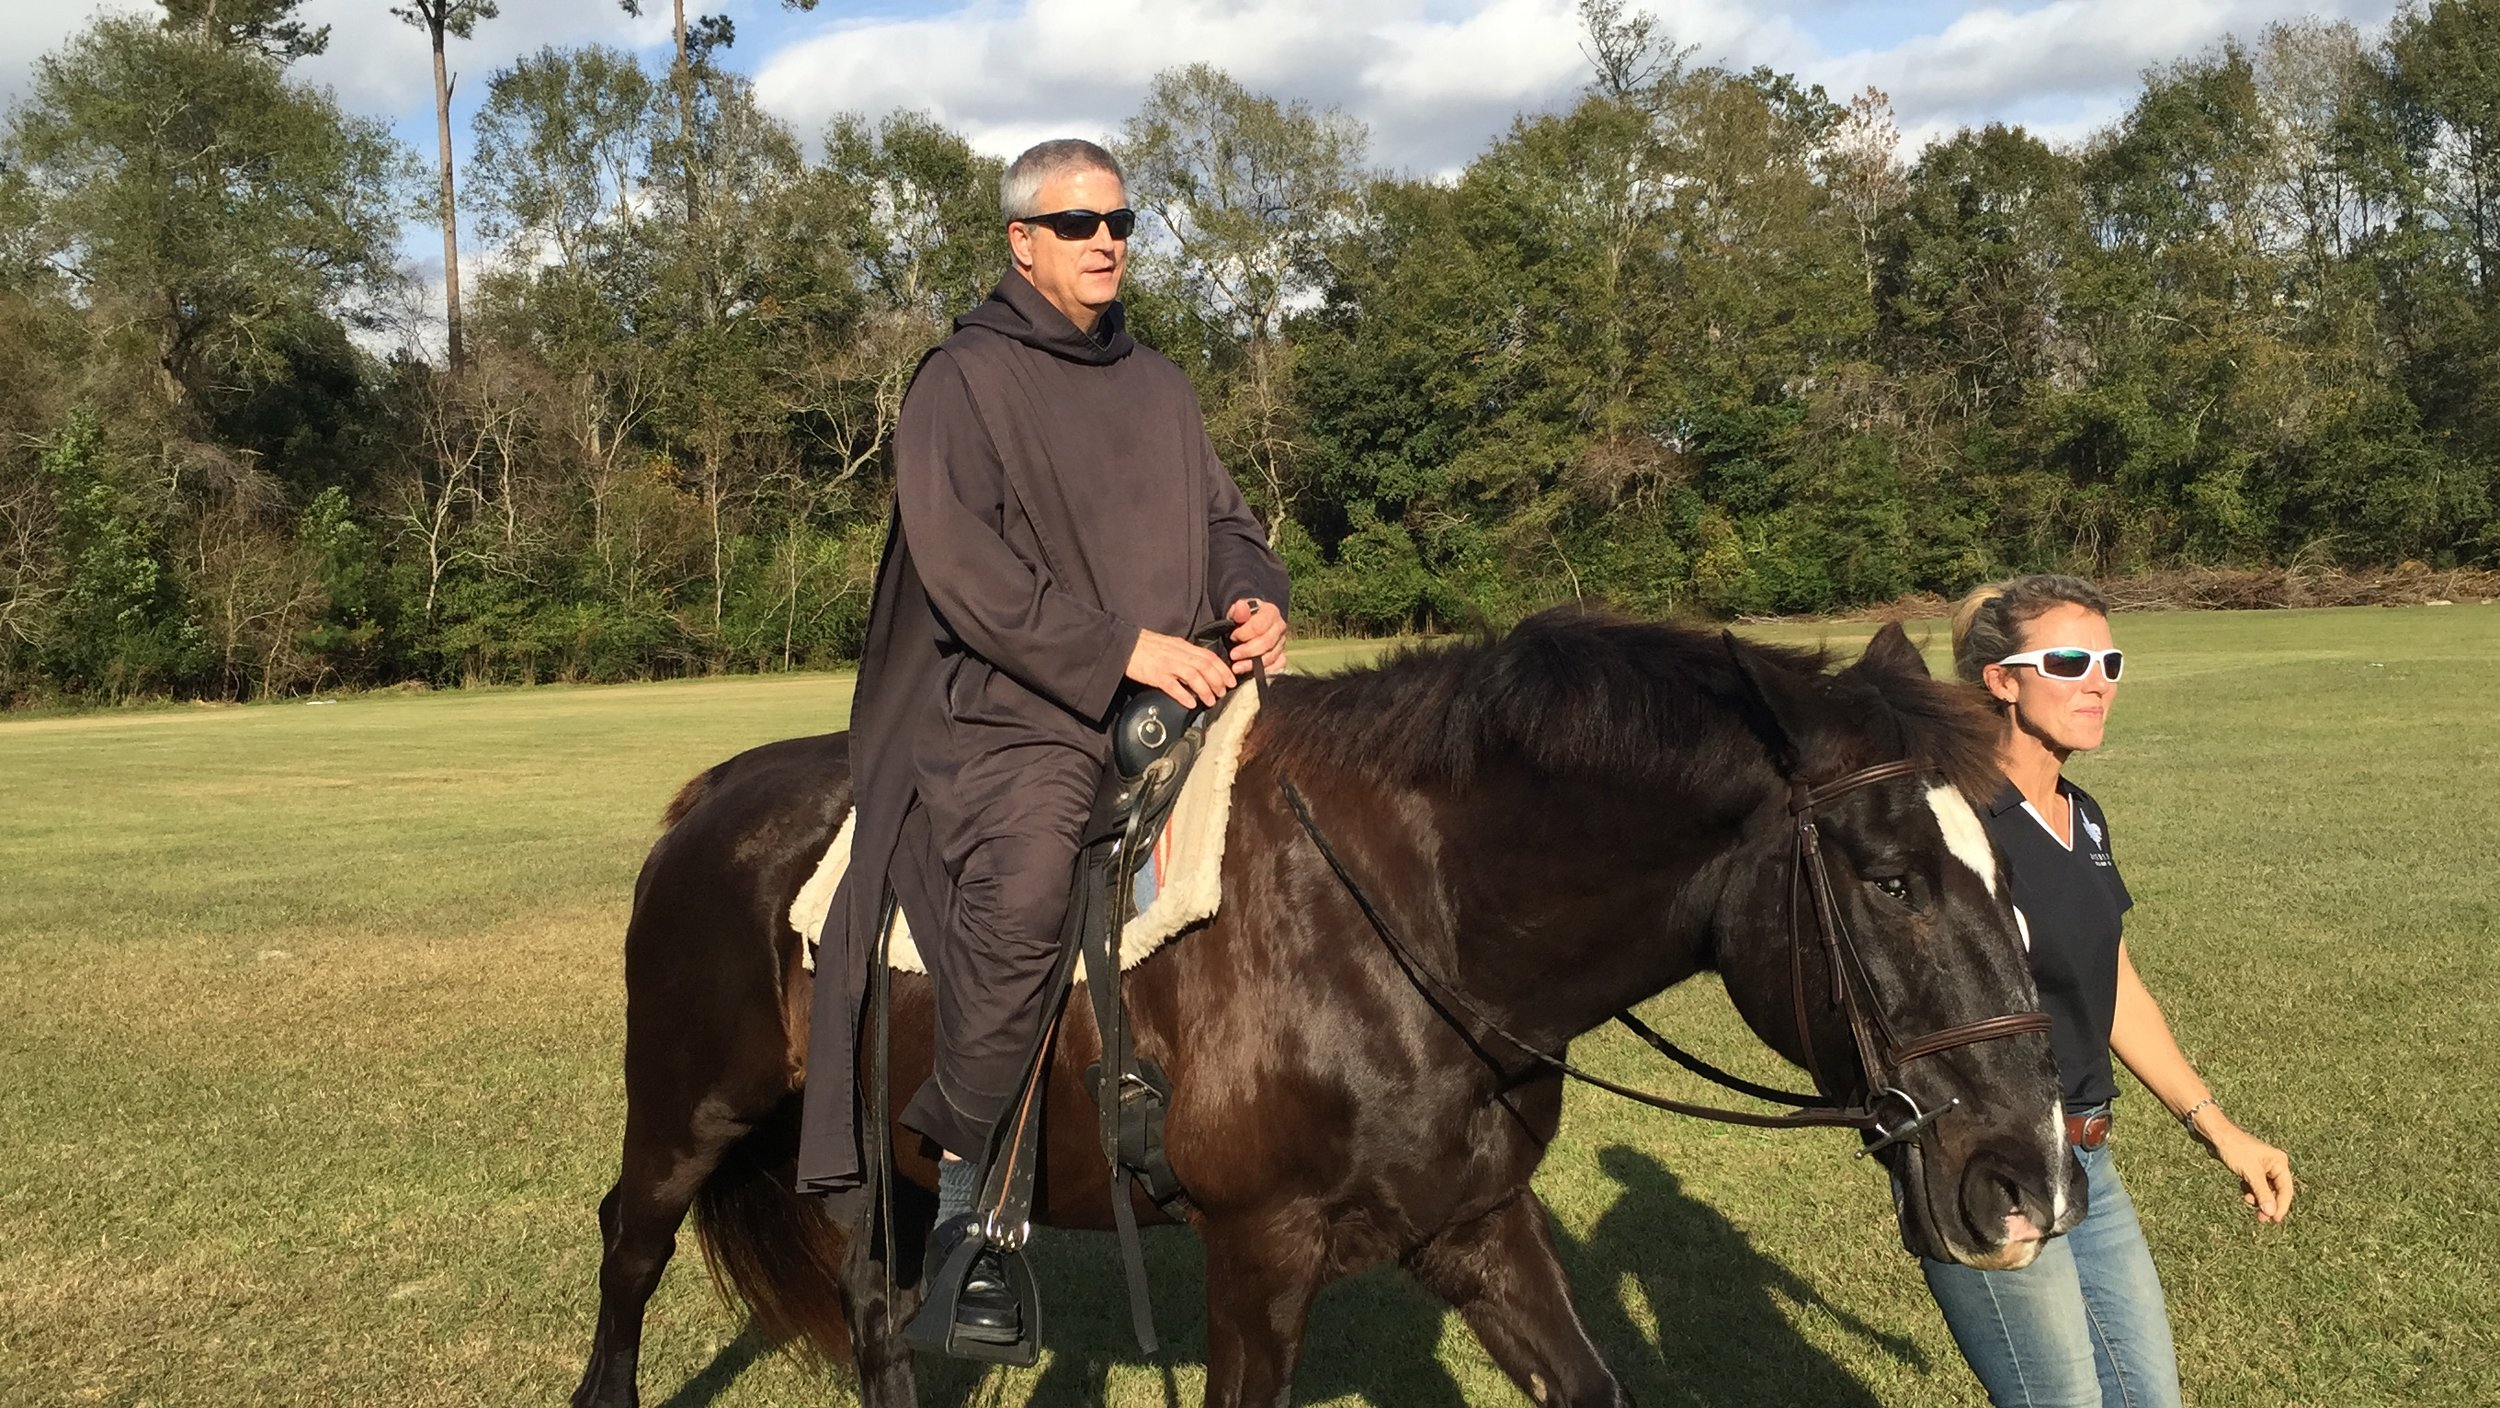 Fr. Gregory takes a ride last fall during the Horsemanship Program's class at Saint Joseph Abbey and Seminary College.